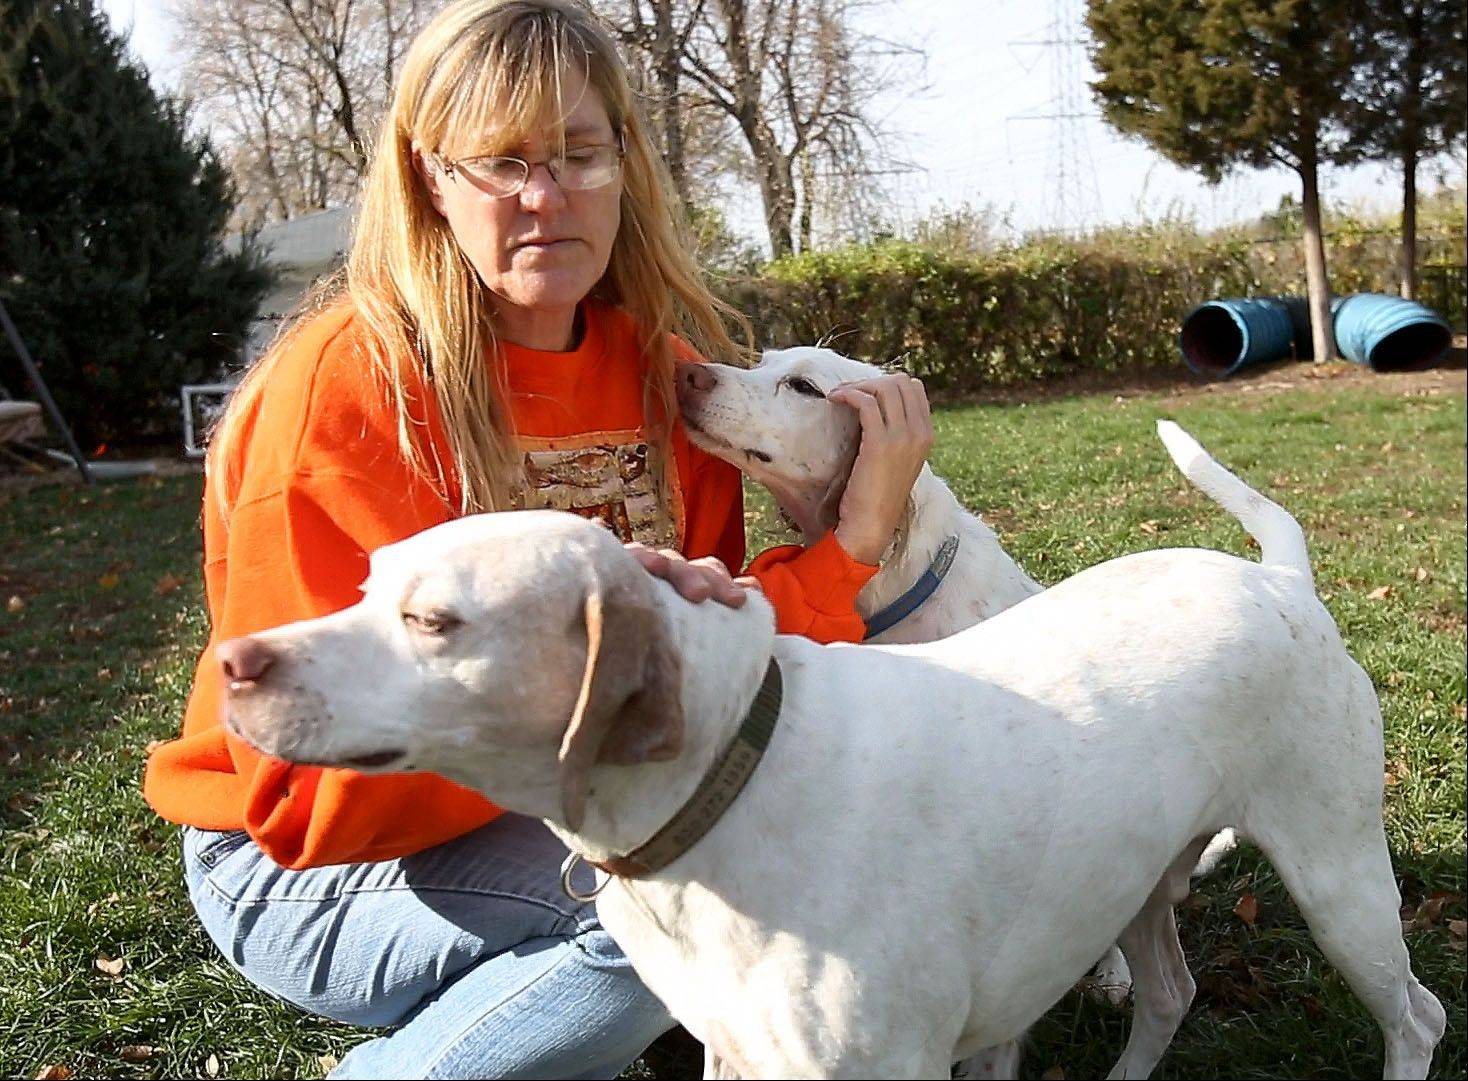 Spakowski also faces the possibility of losing two of her dogs in order to comply with a city ordinance that limits the number of animals to three per household.